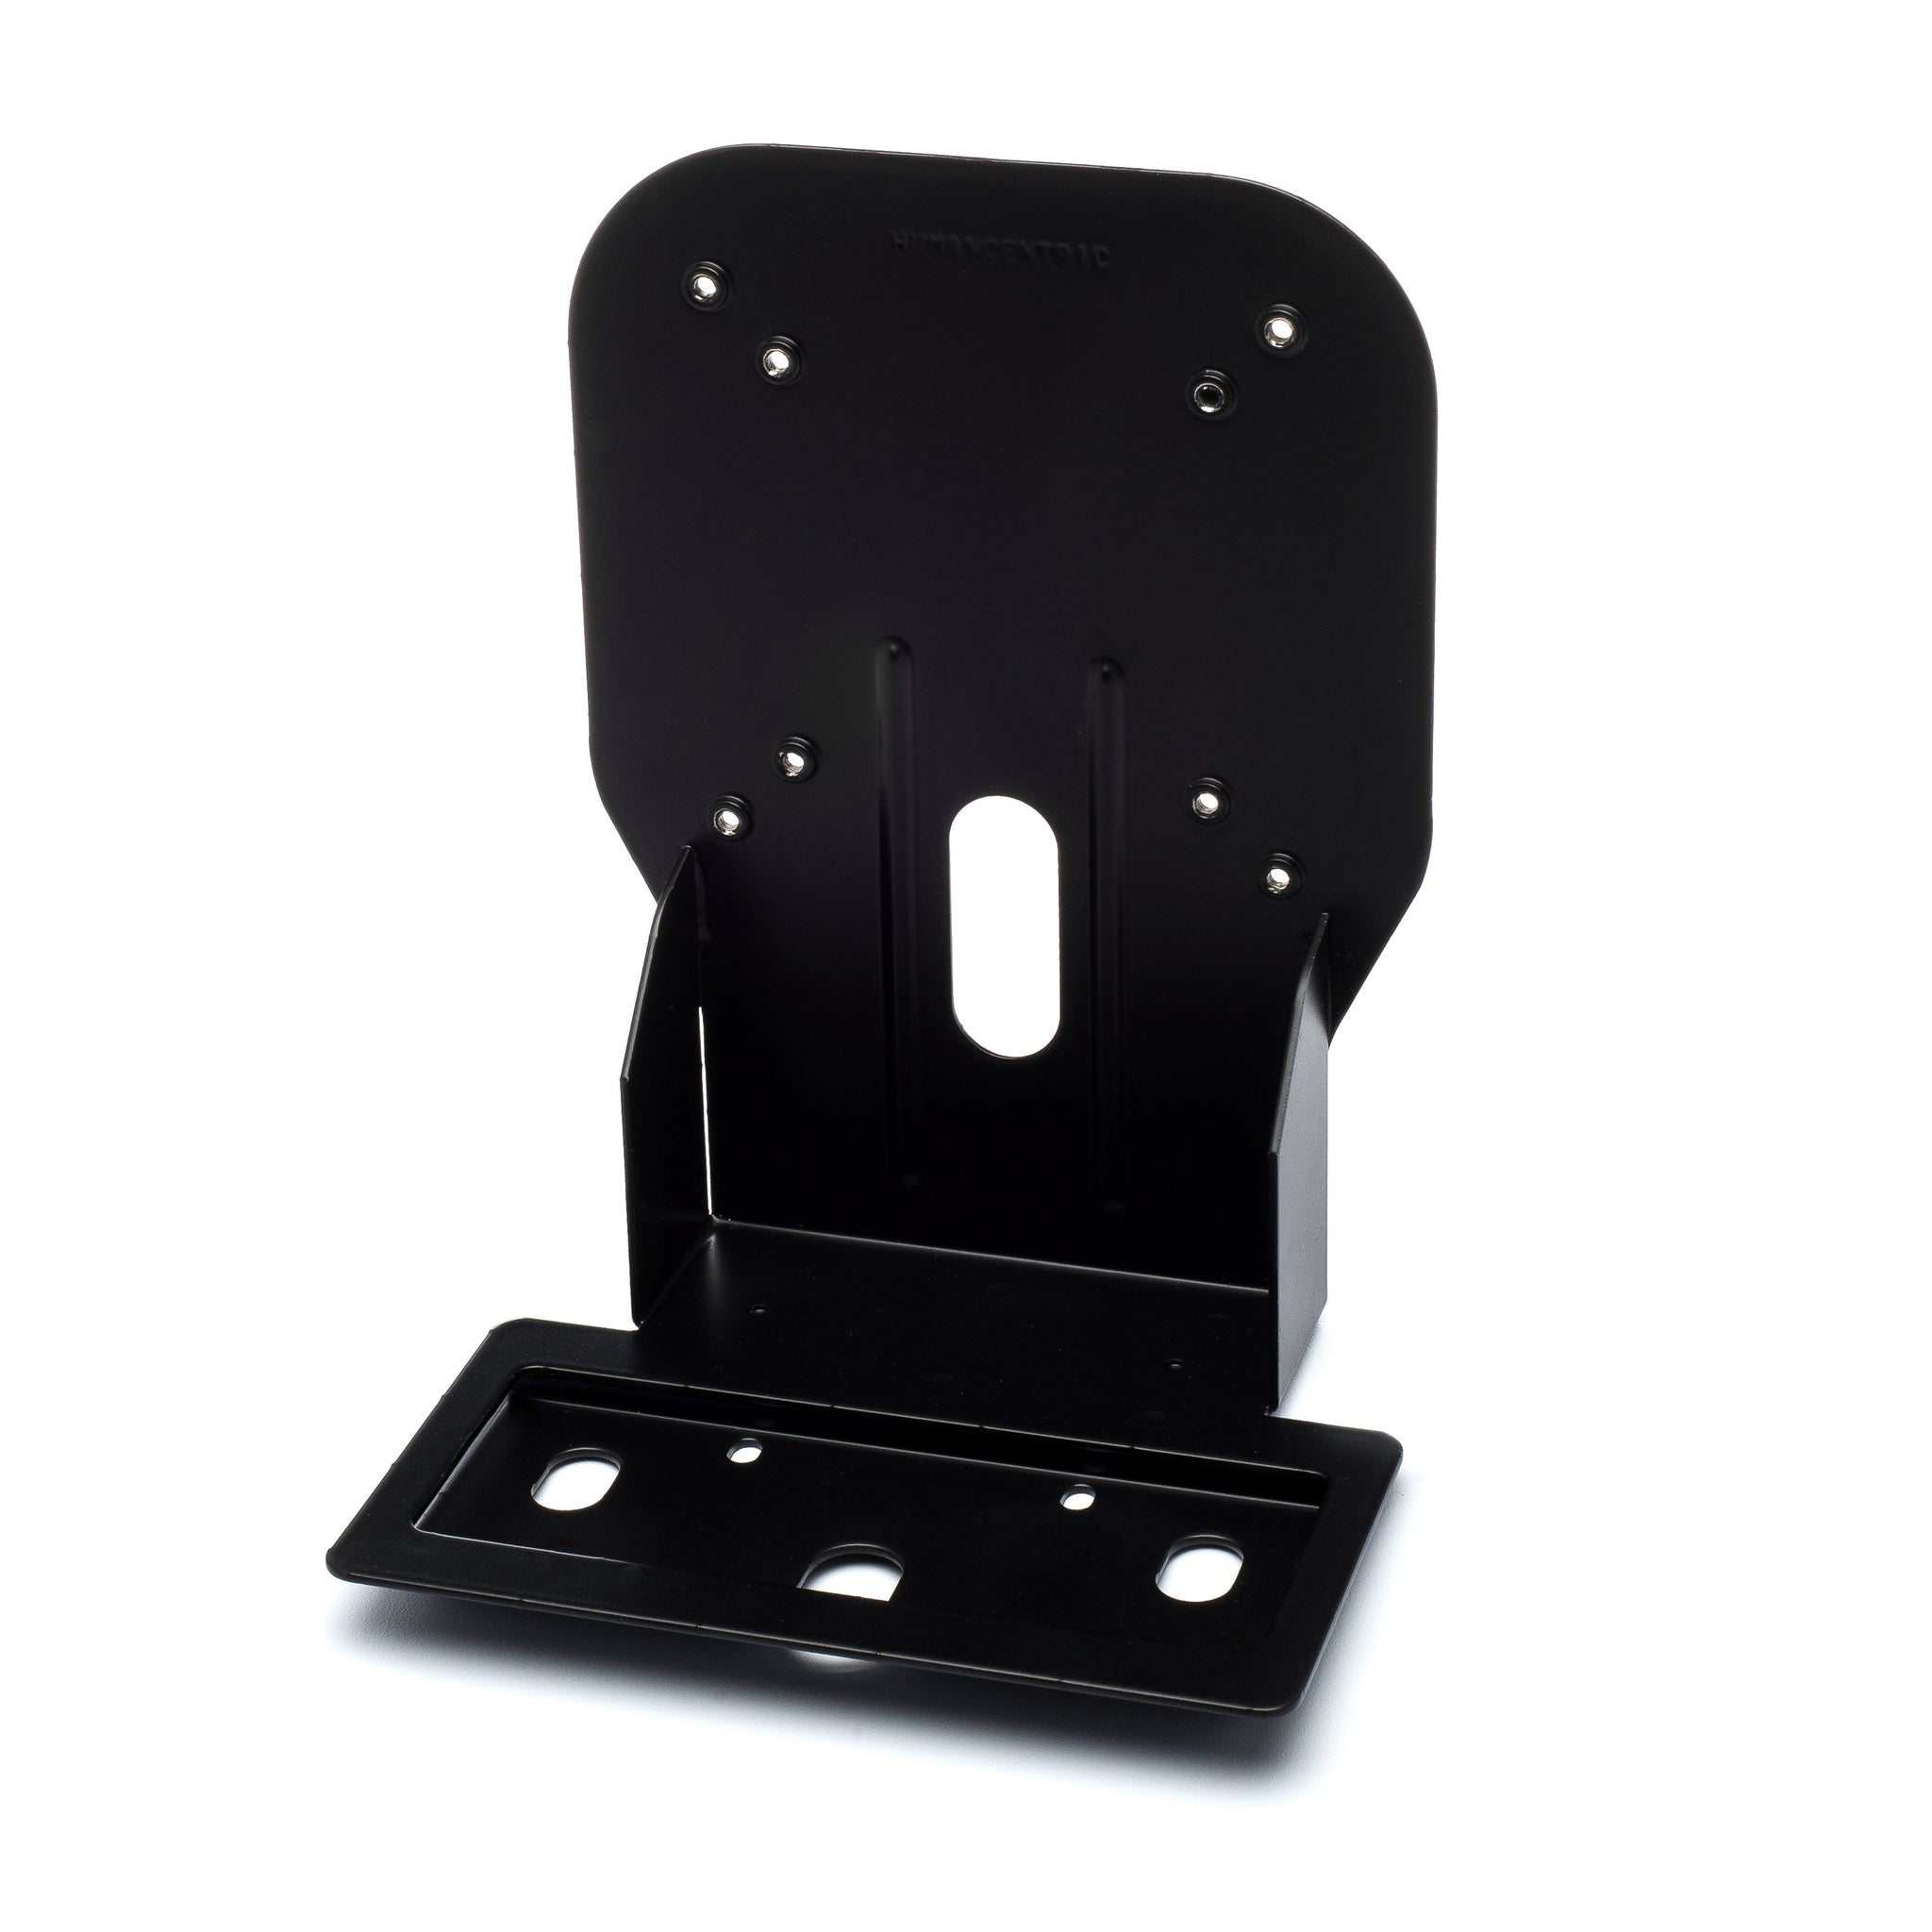 VESA Adapter for ViewSonic VX2*70 Monitors